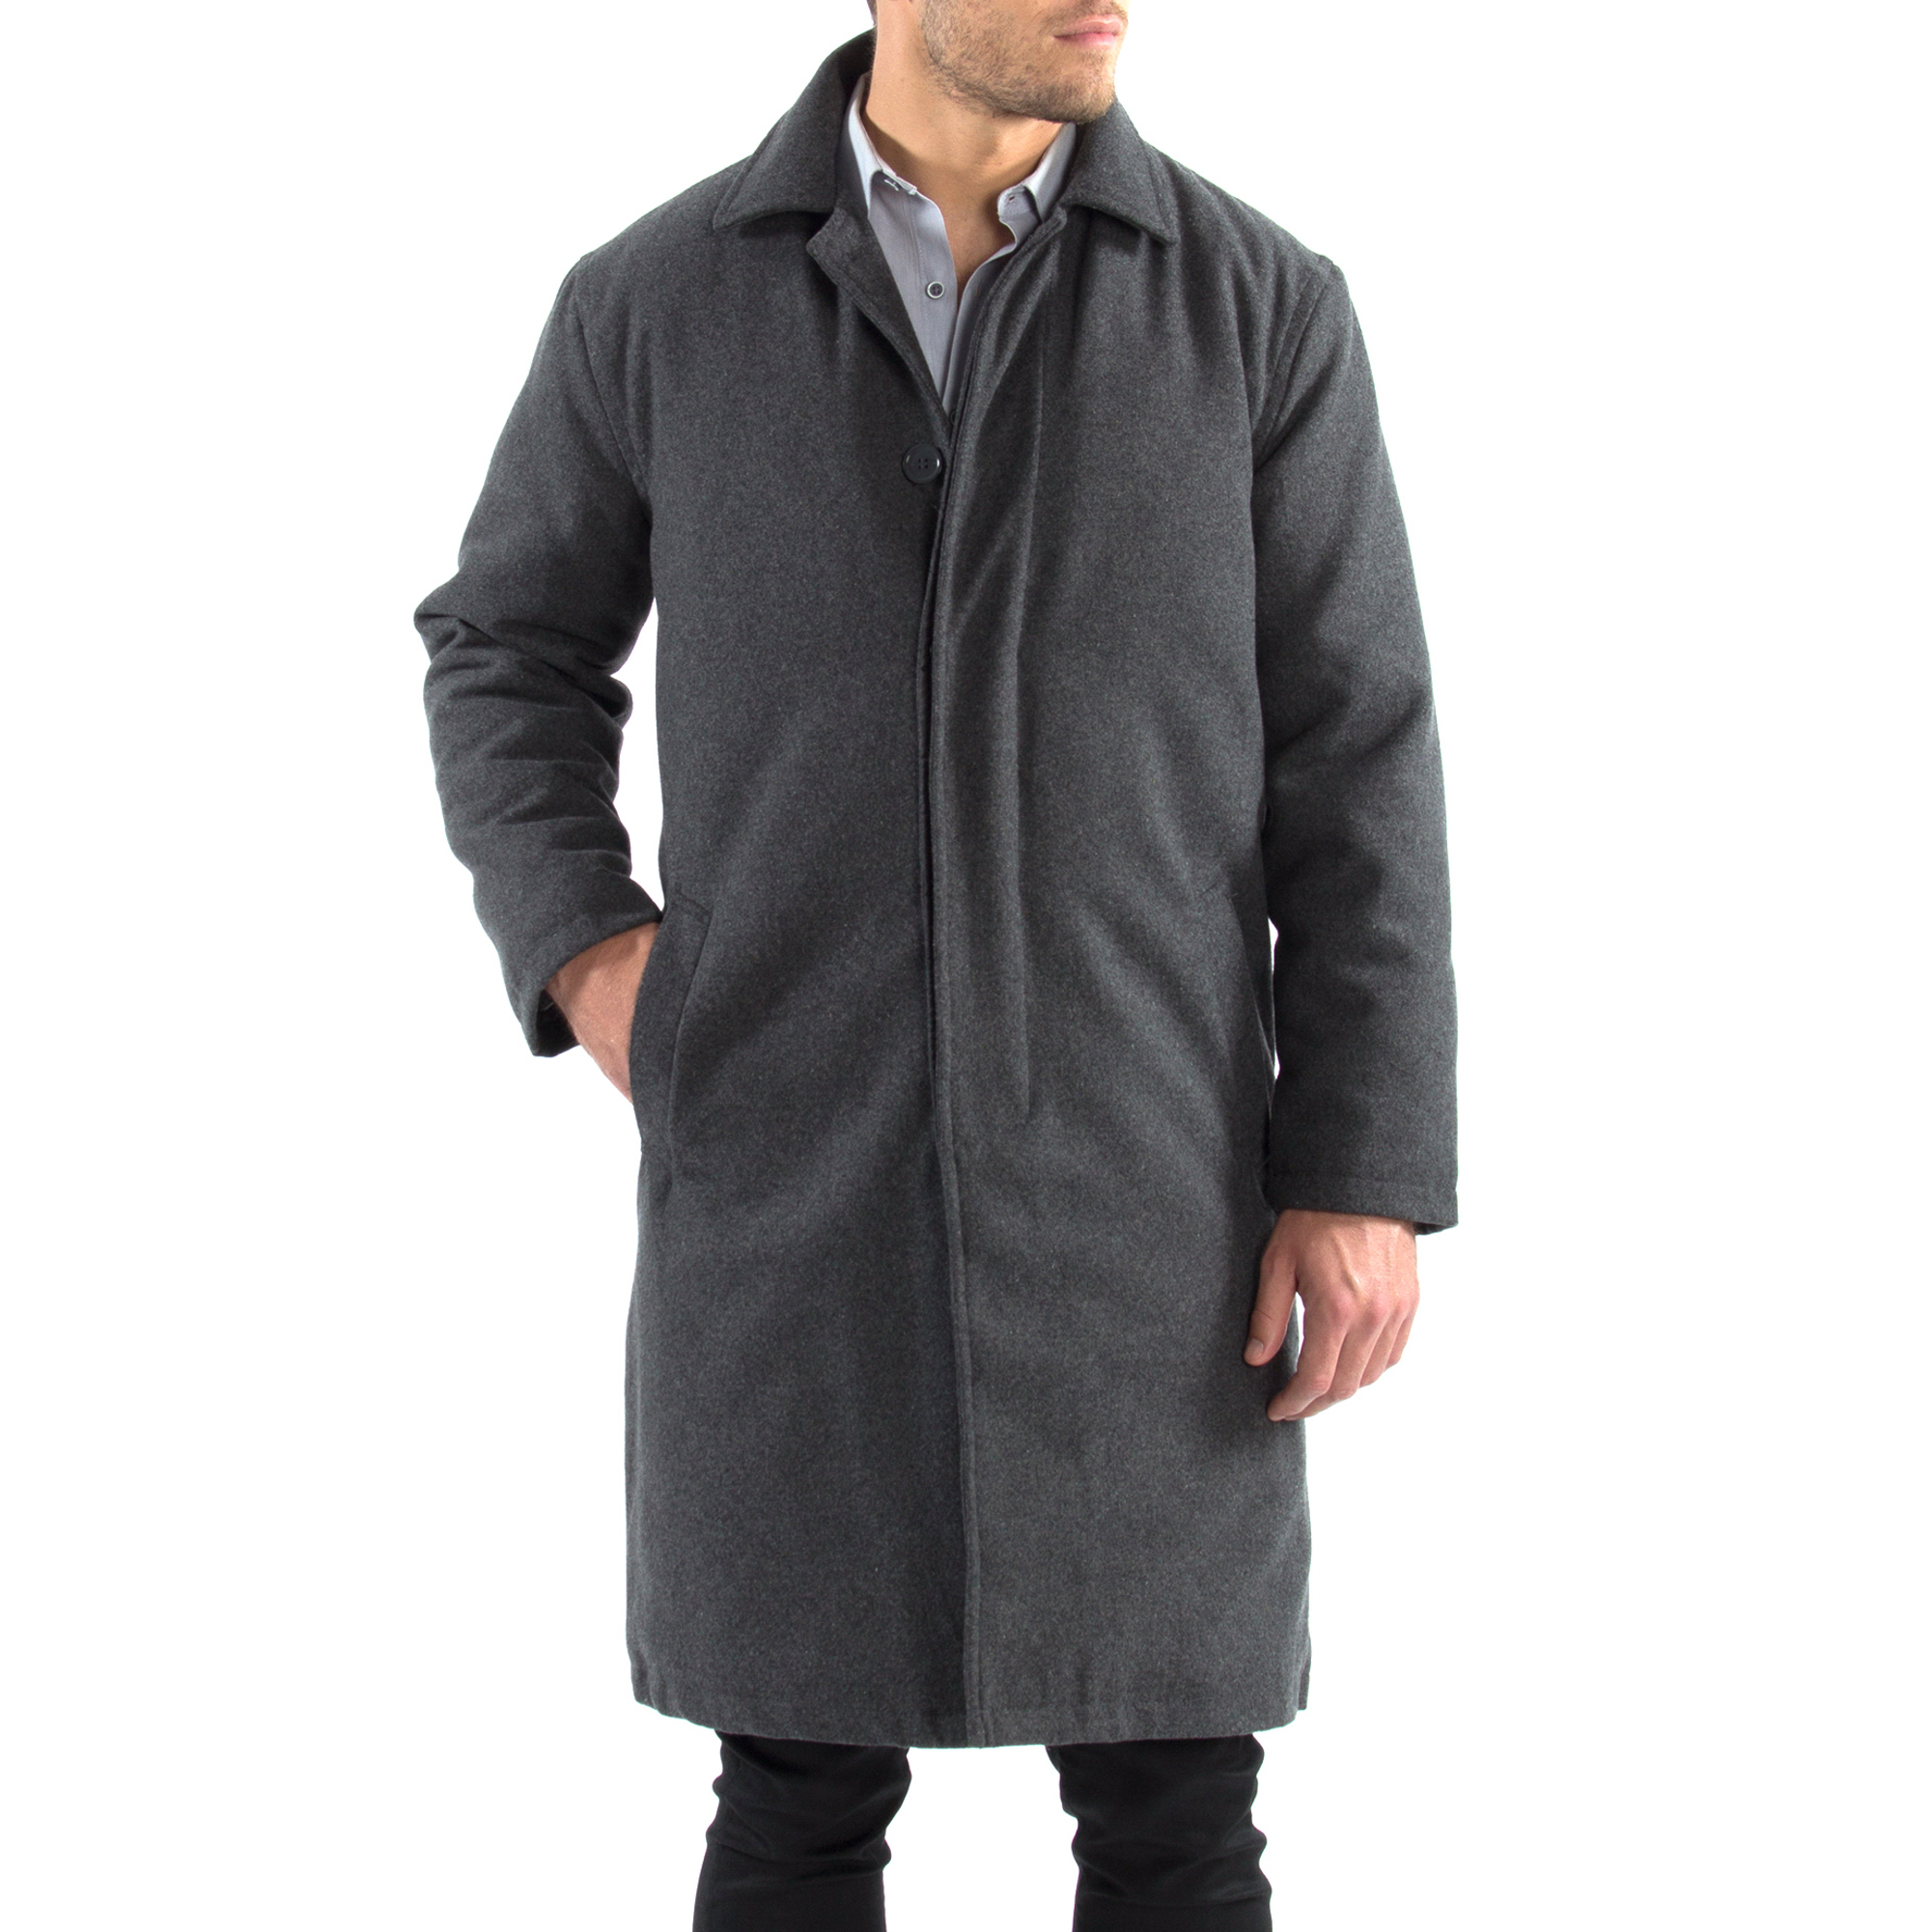 Alpine-Swiss-Mens-Zach-Knee-Length-Jacket-Top-Coat-Trench-Wool-Blend-Overcoat thumbnail 37